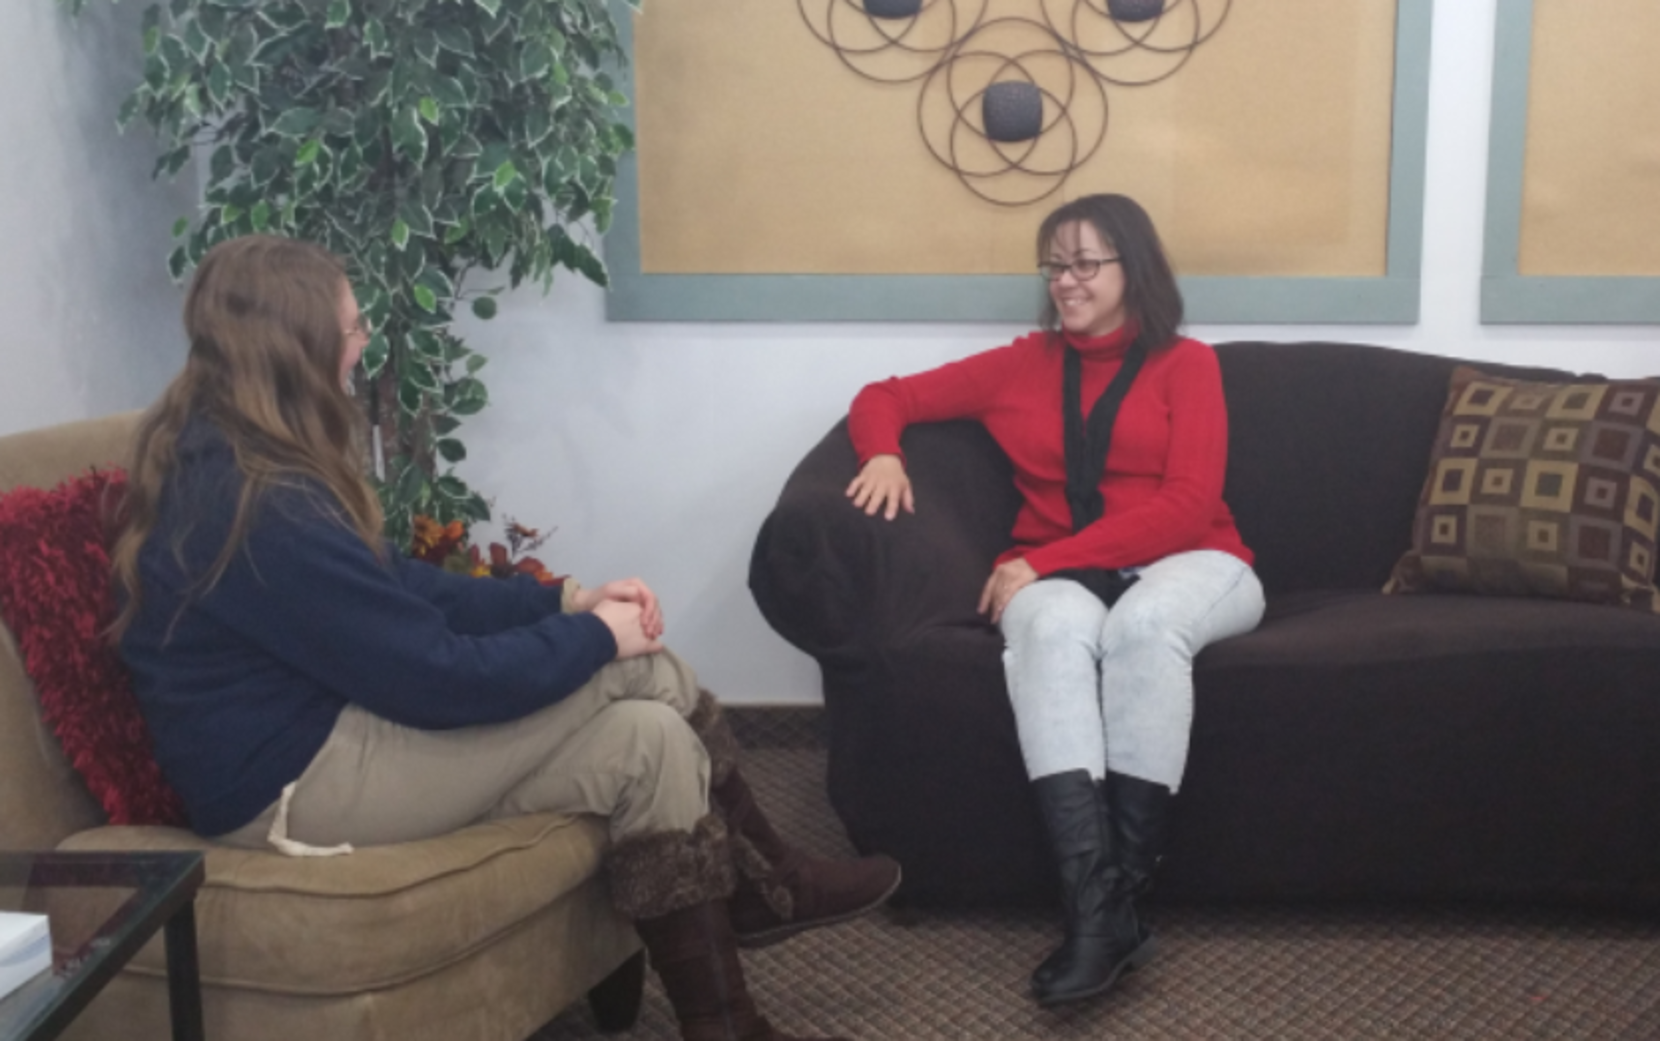 A MSW student and a professor sit across from each other in the therapy space.